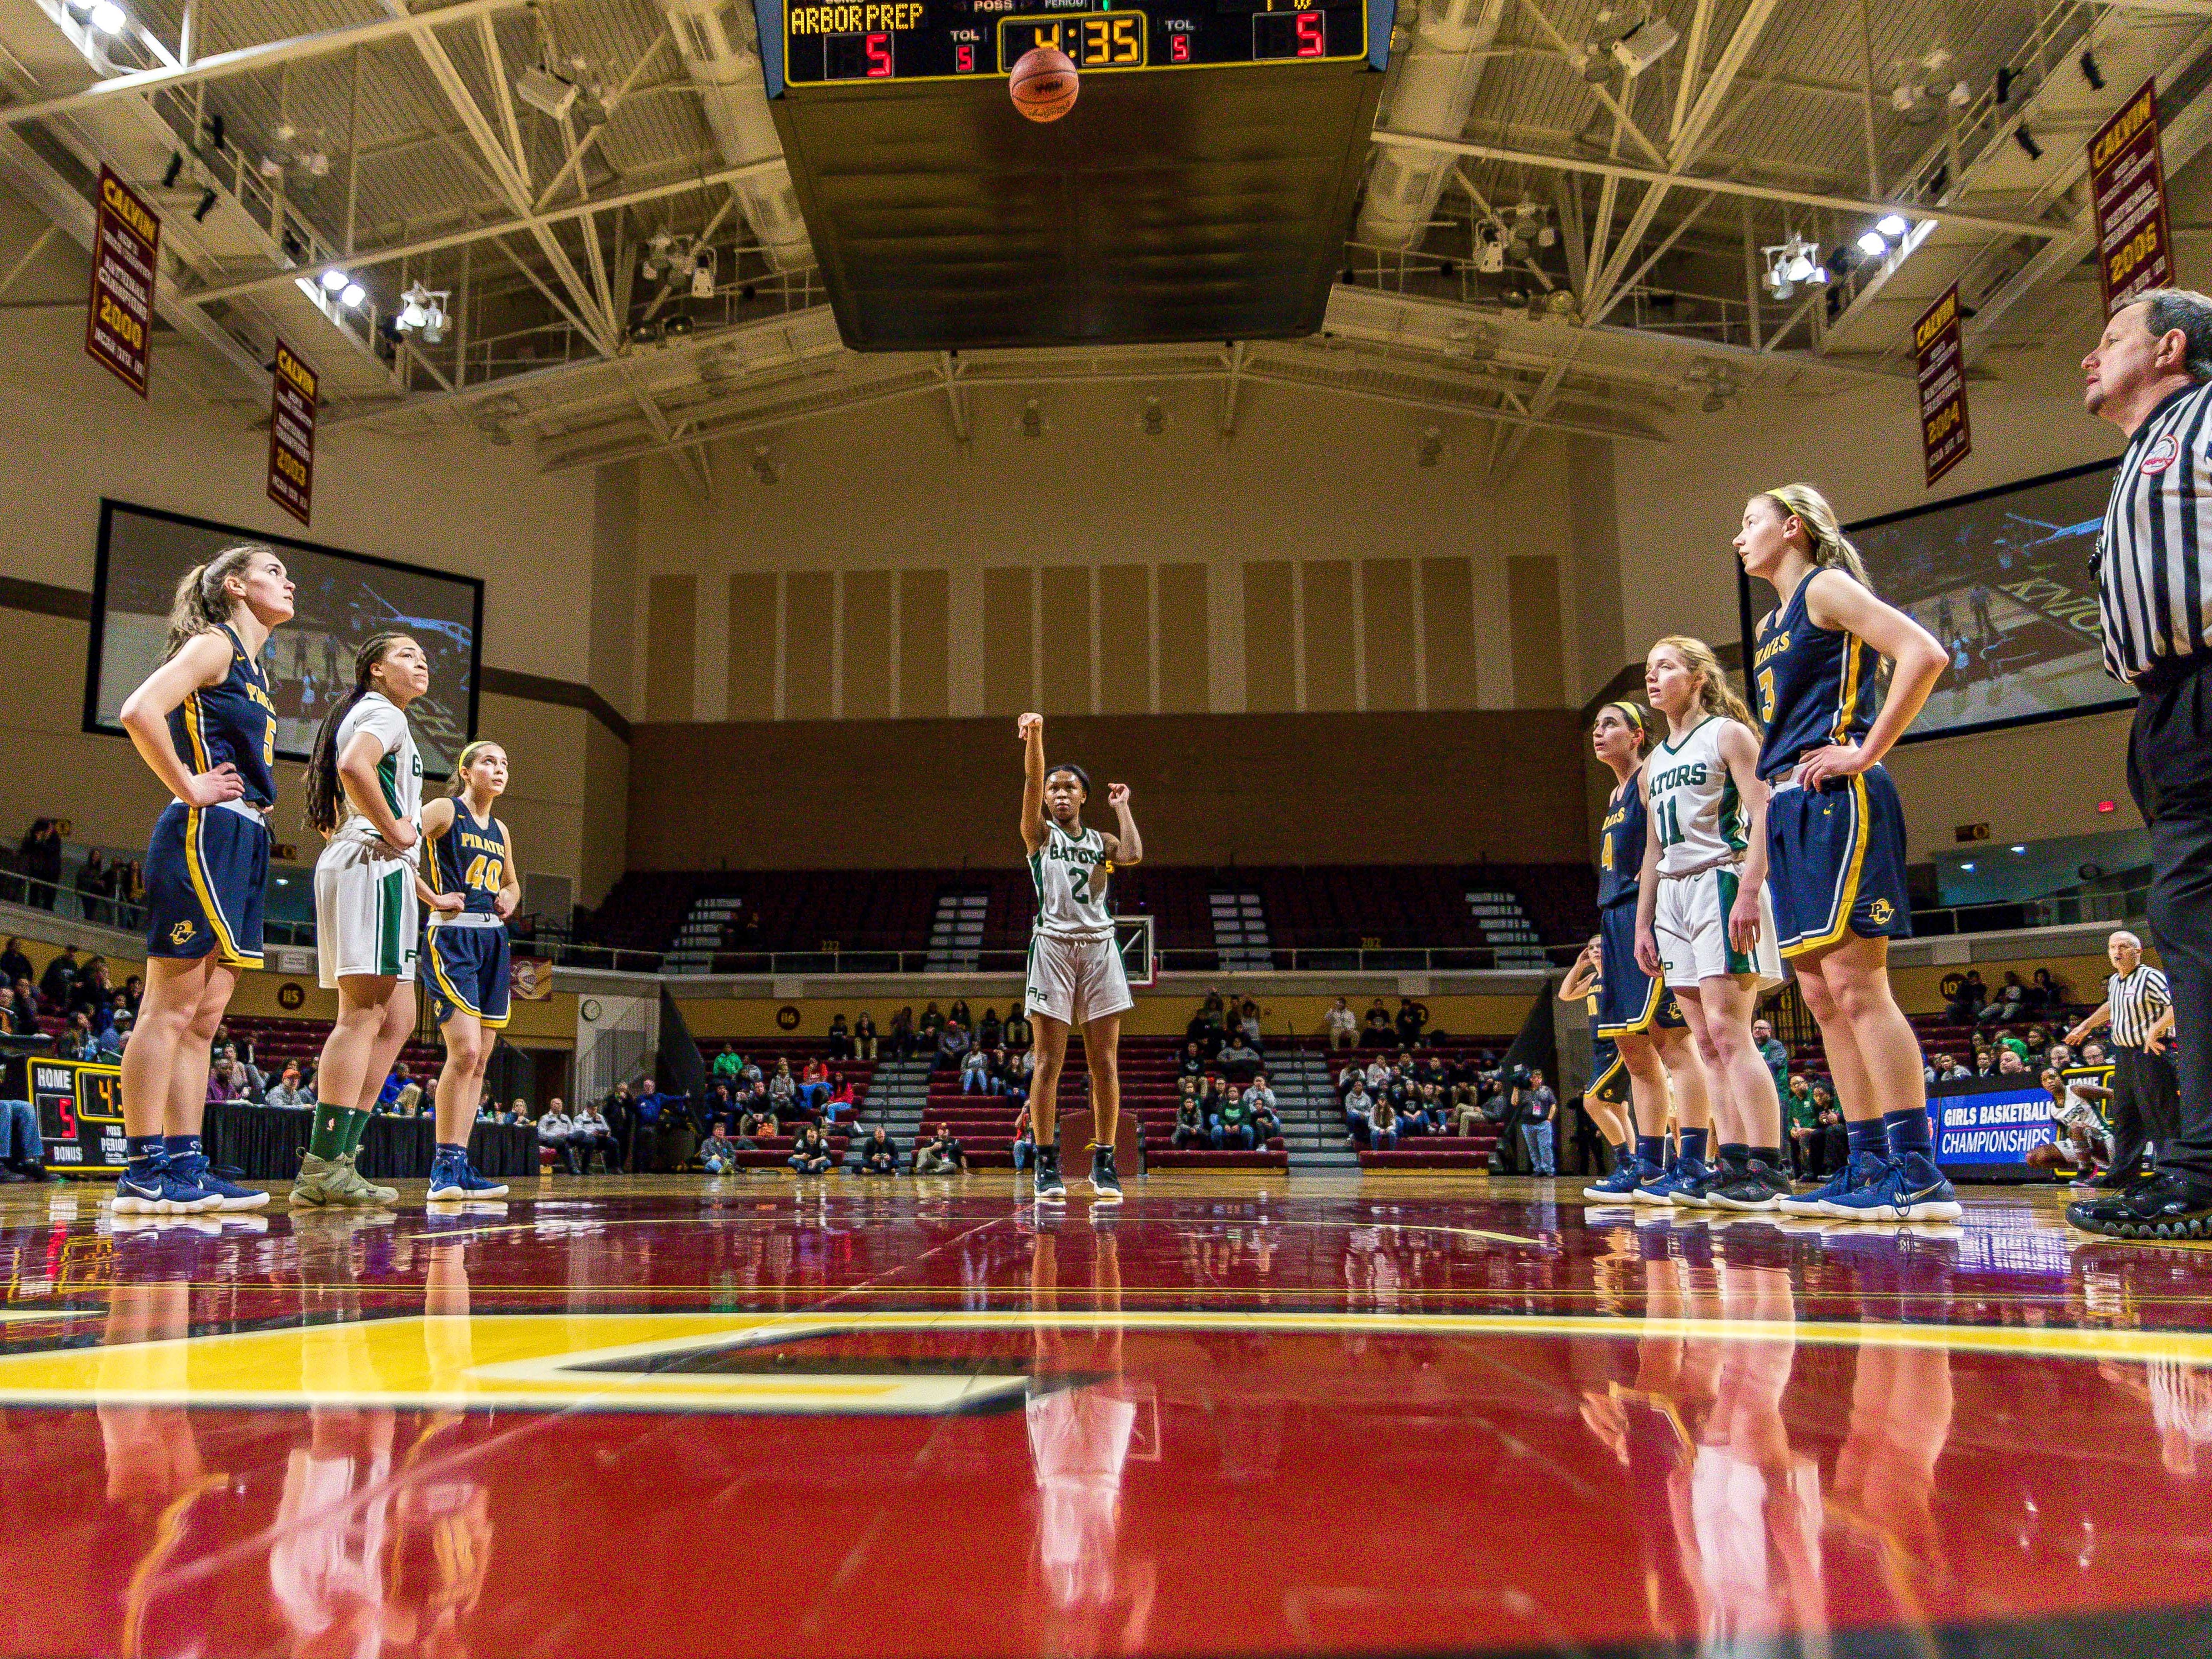 Ypsilanti Arbor Prep's Jazmin Chupp shoots a free throw in the first half against Pewamo-Westphalia in the MHSAA Division 3 girls basketball semifinals at Calvin College in Grand Rapids.